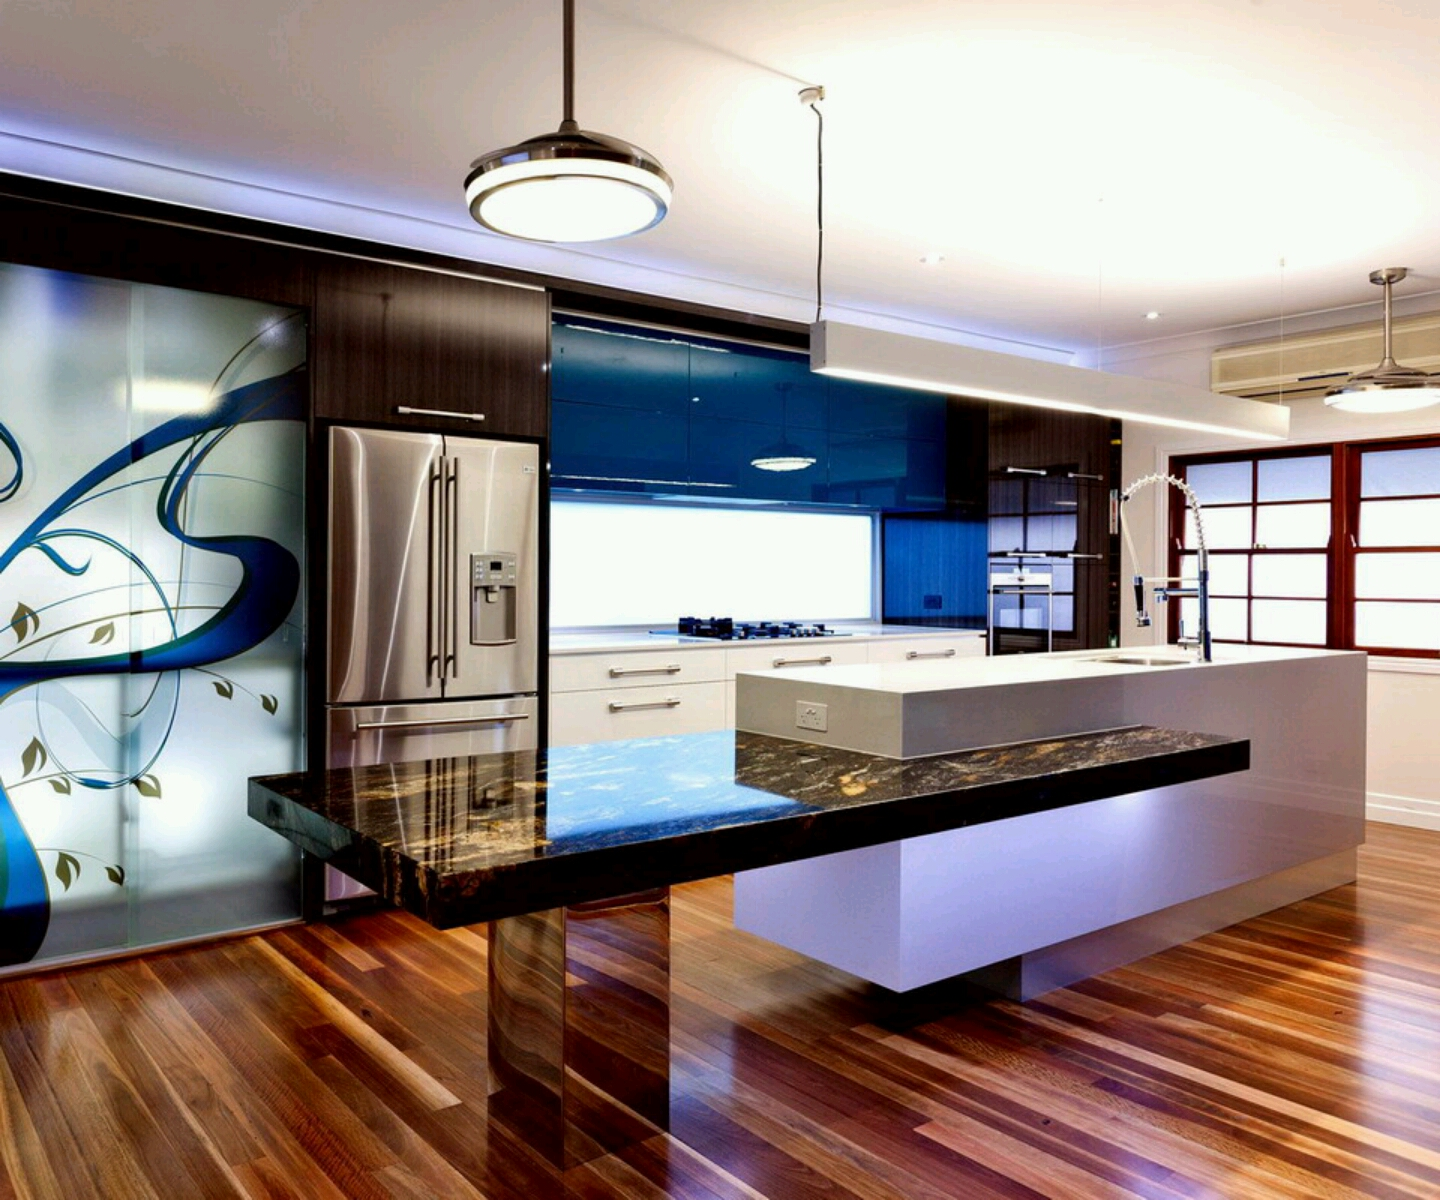 Ultra modern kitchen designs ideas new home designs for Home kitchen design pictures